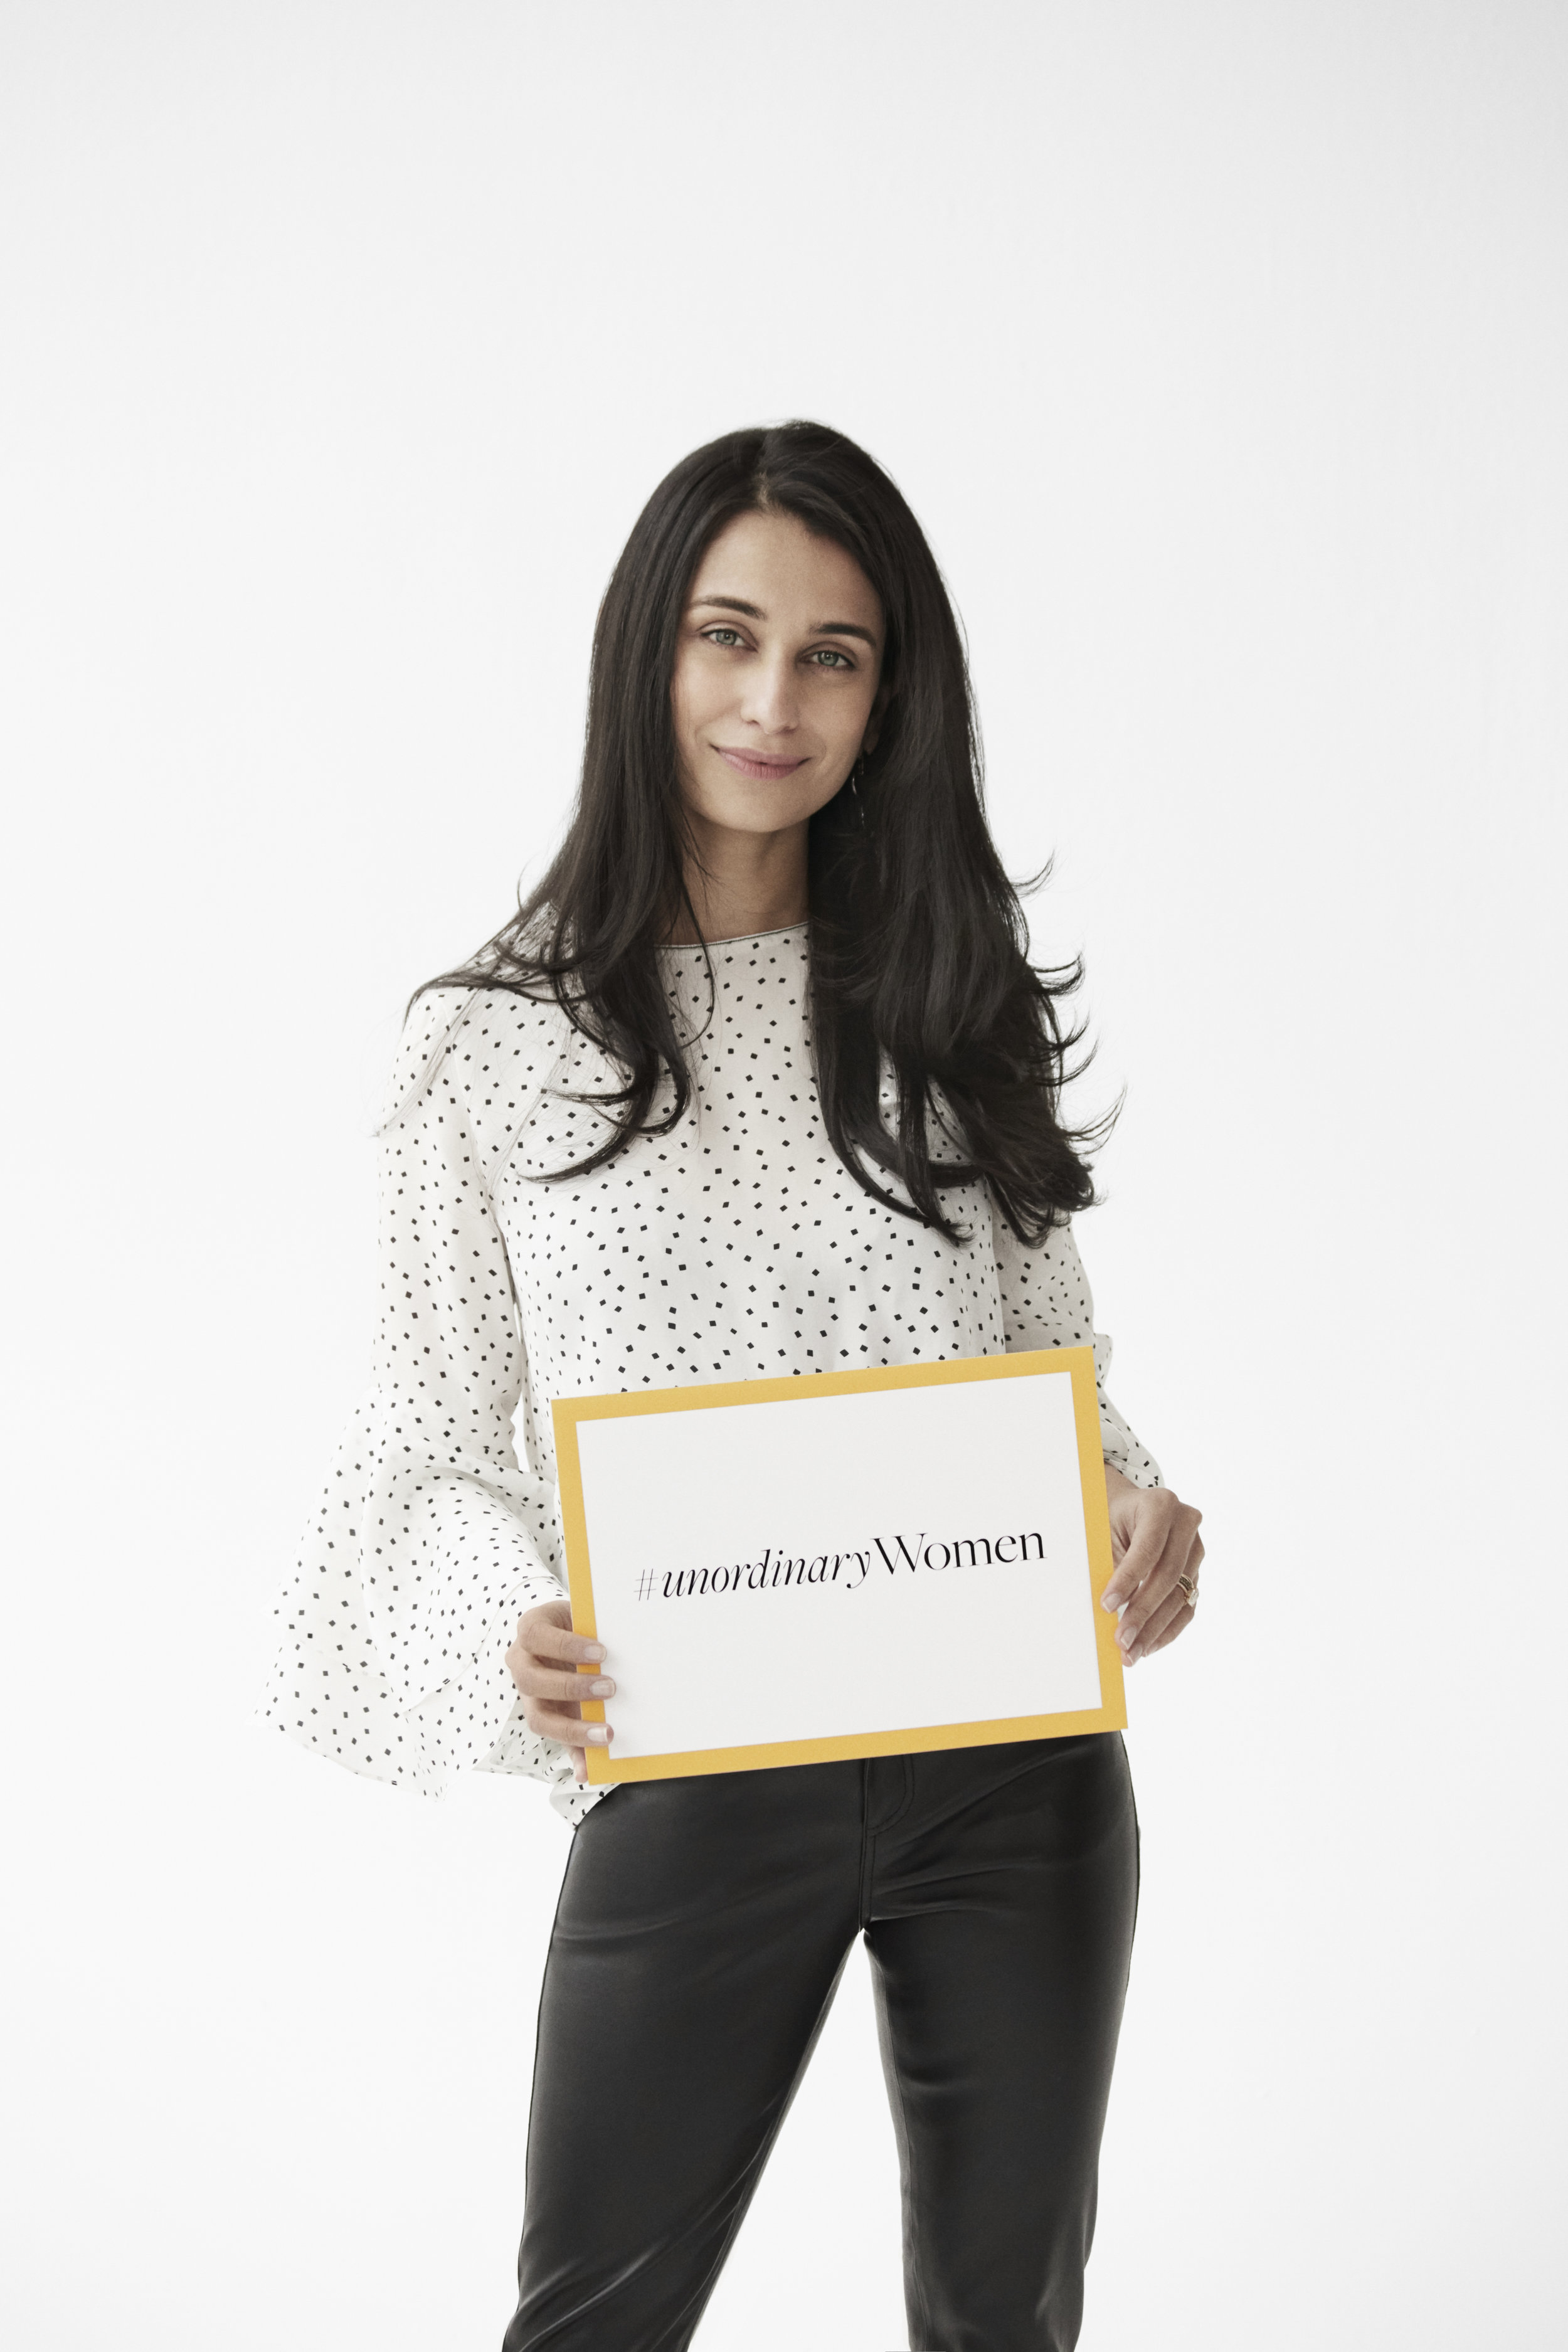 Lafayette 148 New York  #UnordinaryWomen Campaign  in support of  She's The First